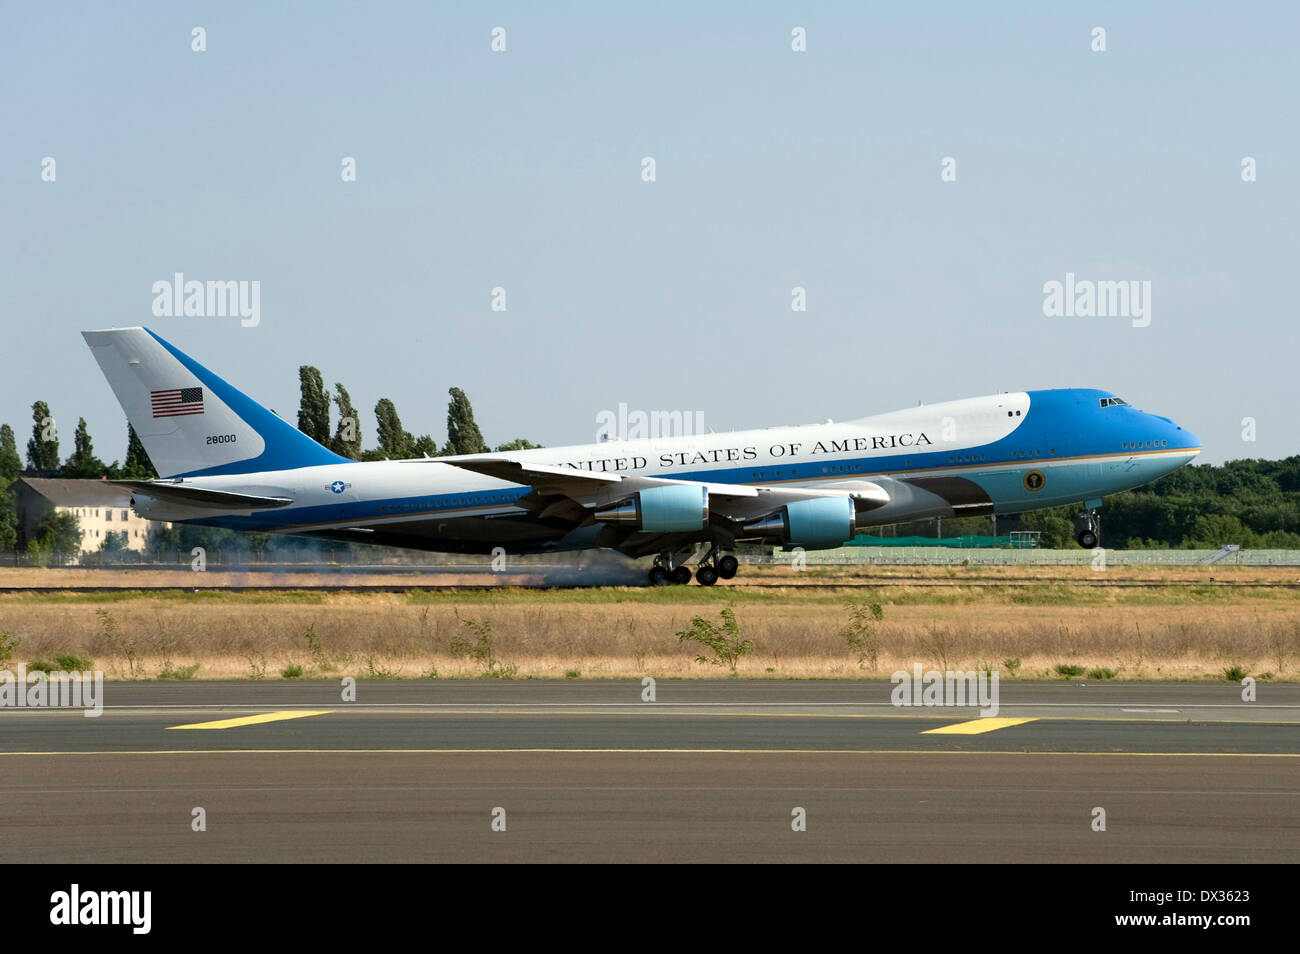 landing Air Force One - Stock Image